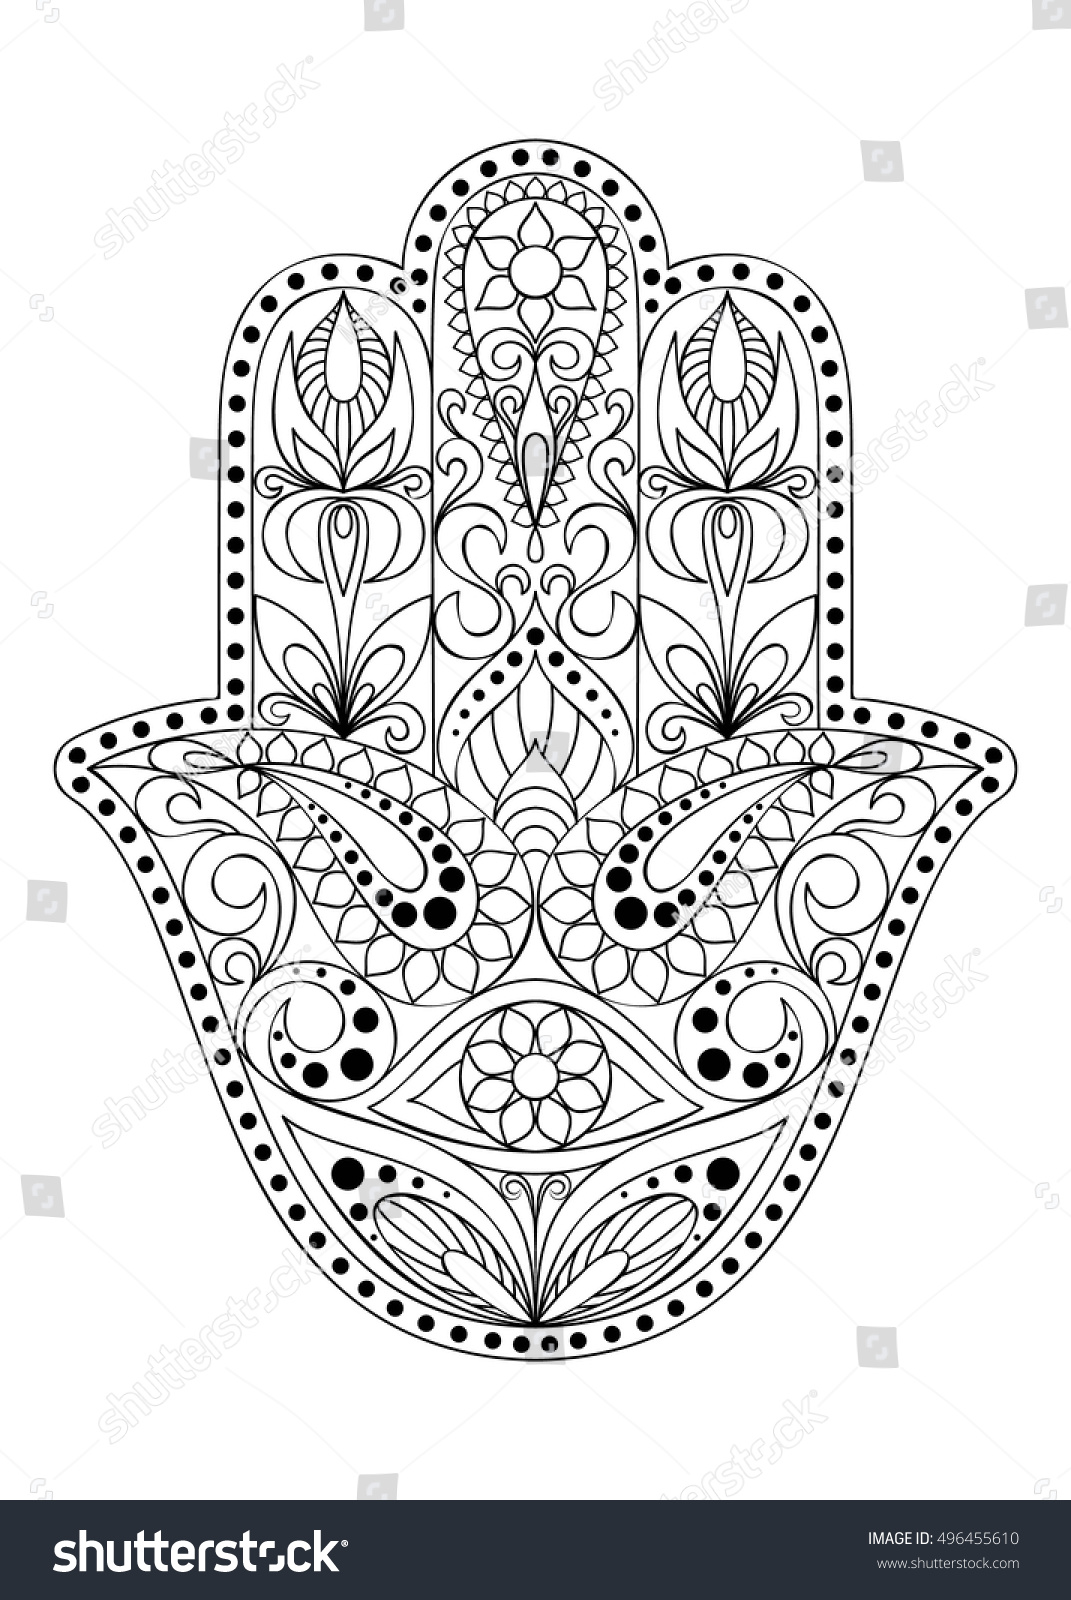 Hand drawn hamsa symbol eastern floral stock vector 496455610 hand drawn hamsa symbol with eastern floral ornament for adult coloring hand of fatima biocorpaavc Image collections